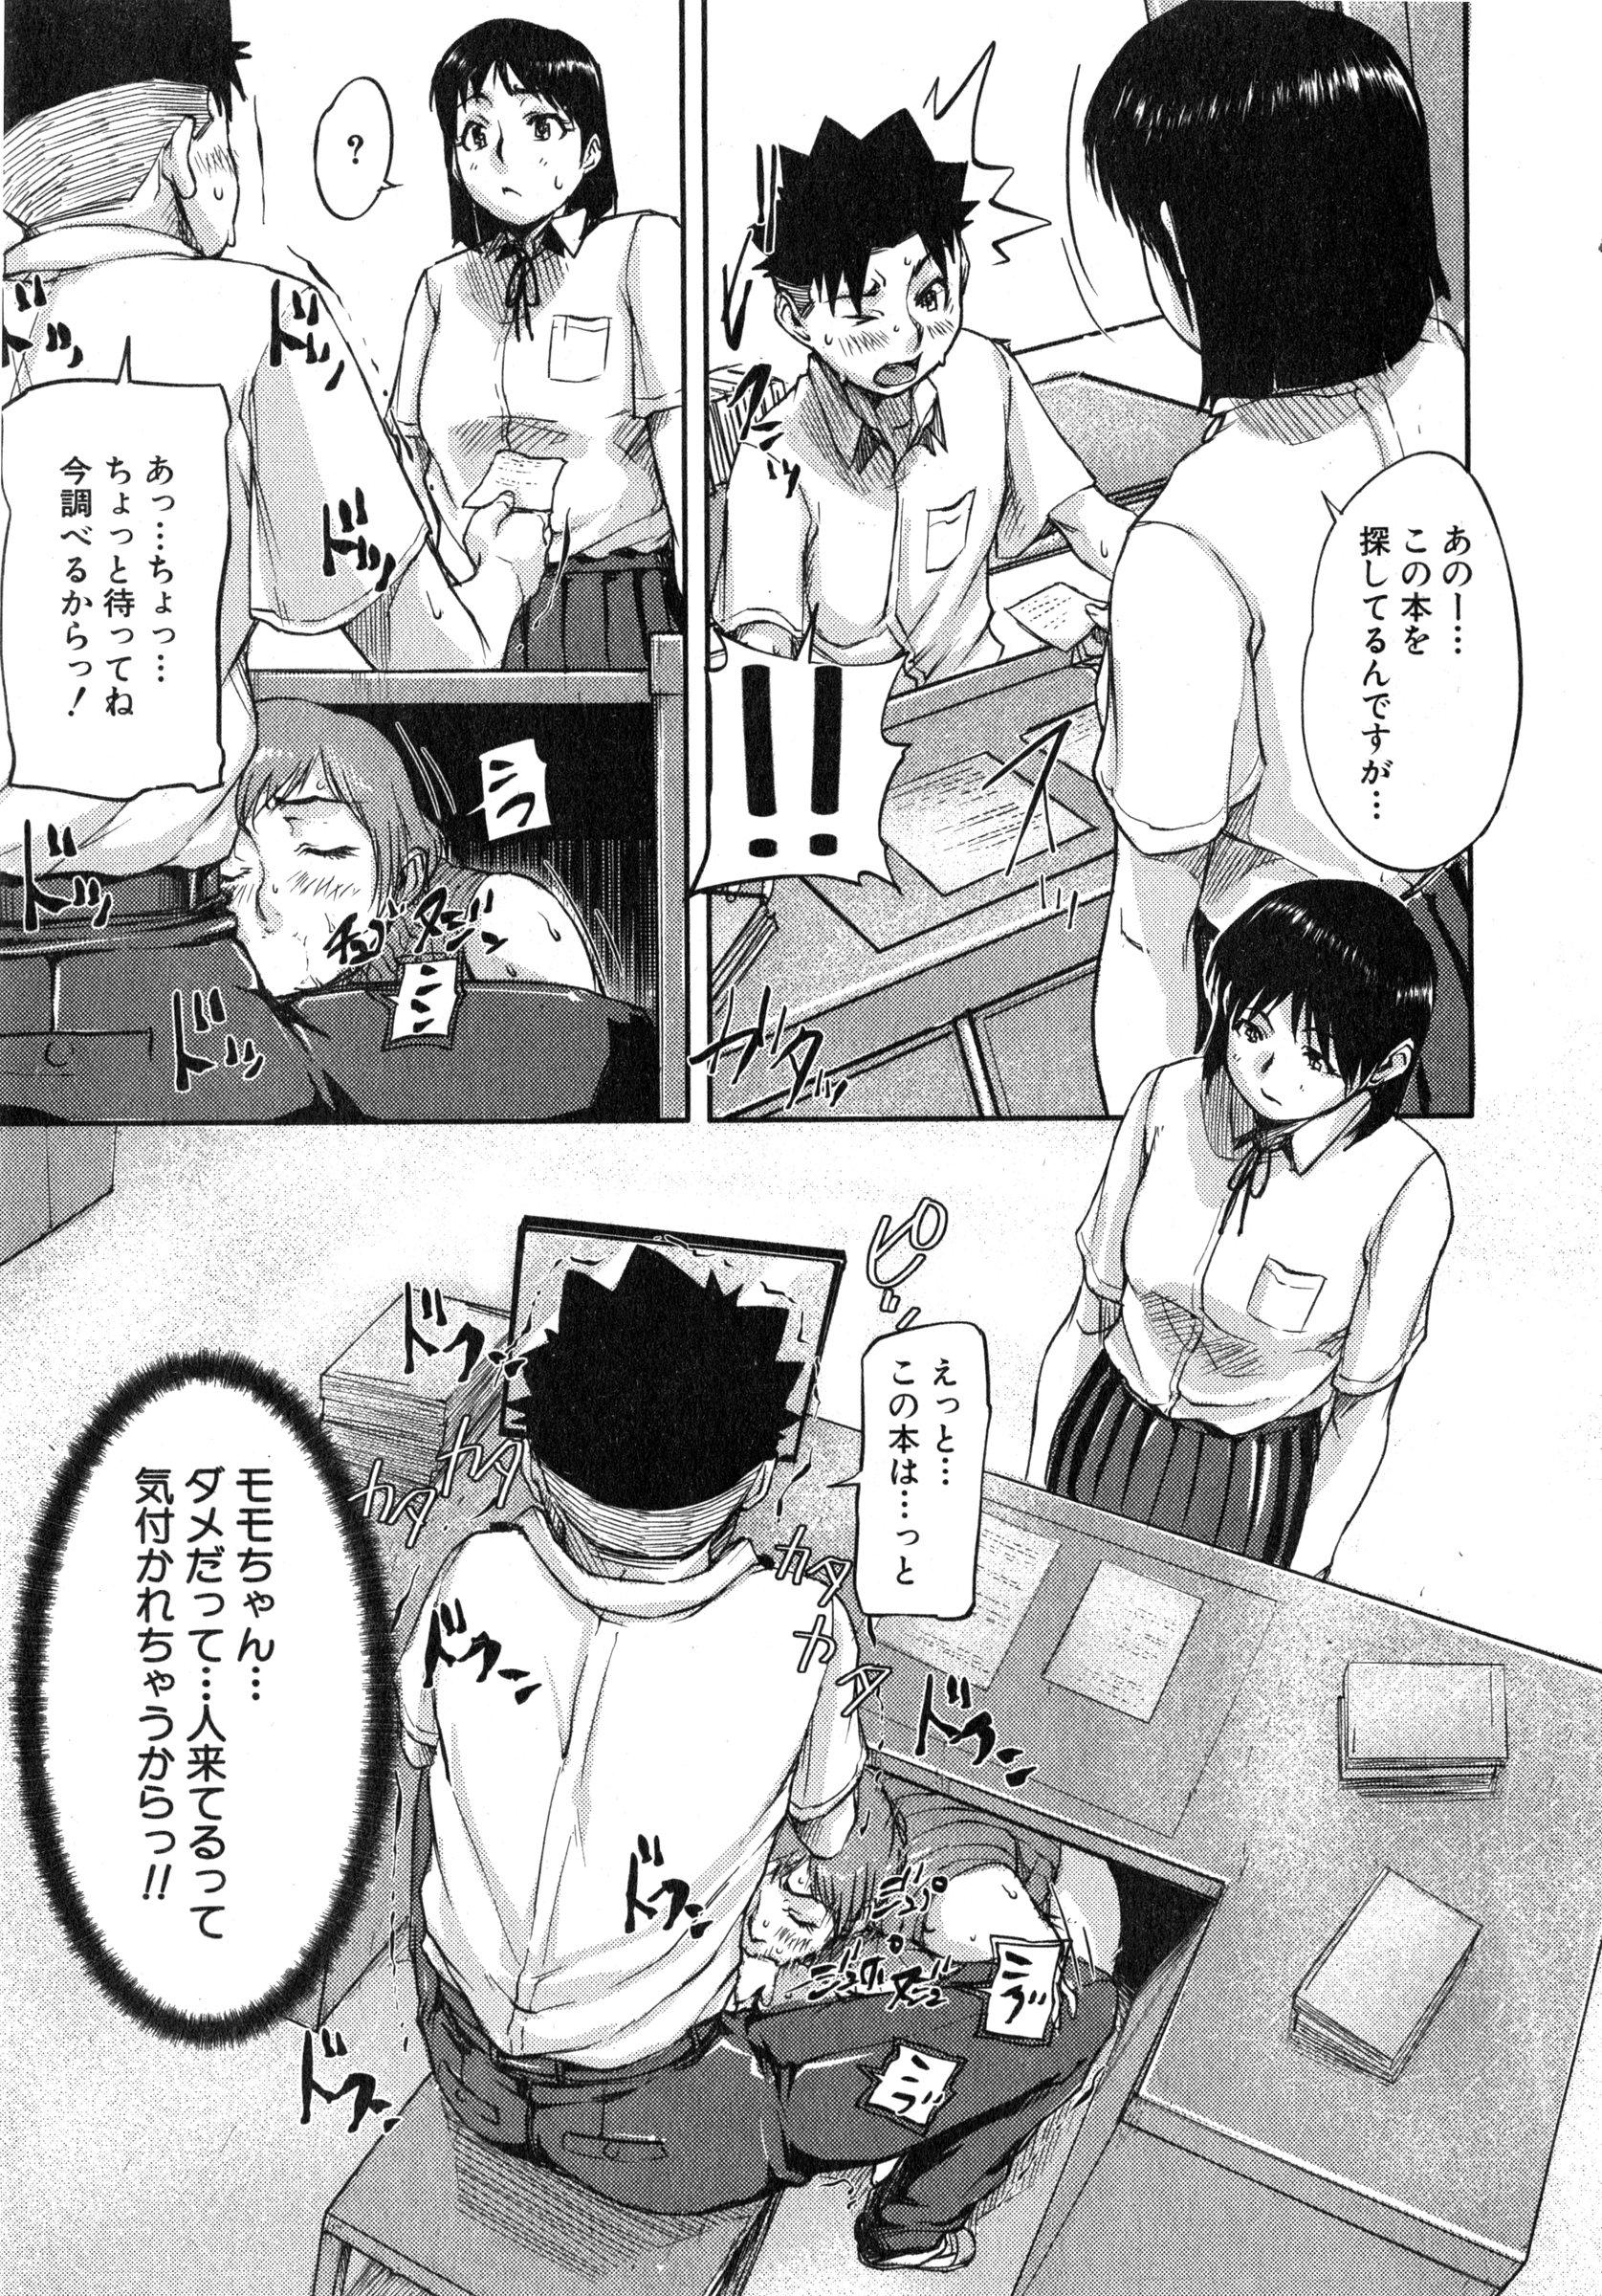 We are the Chijo Kyoushi Ch. 1-2 38